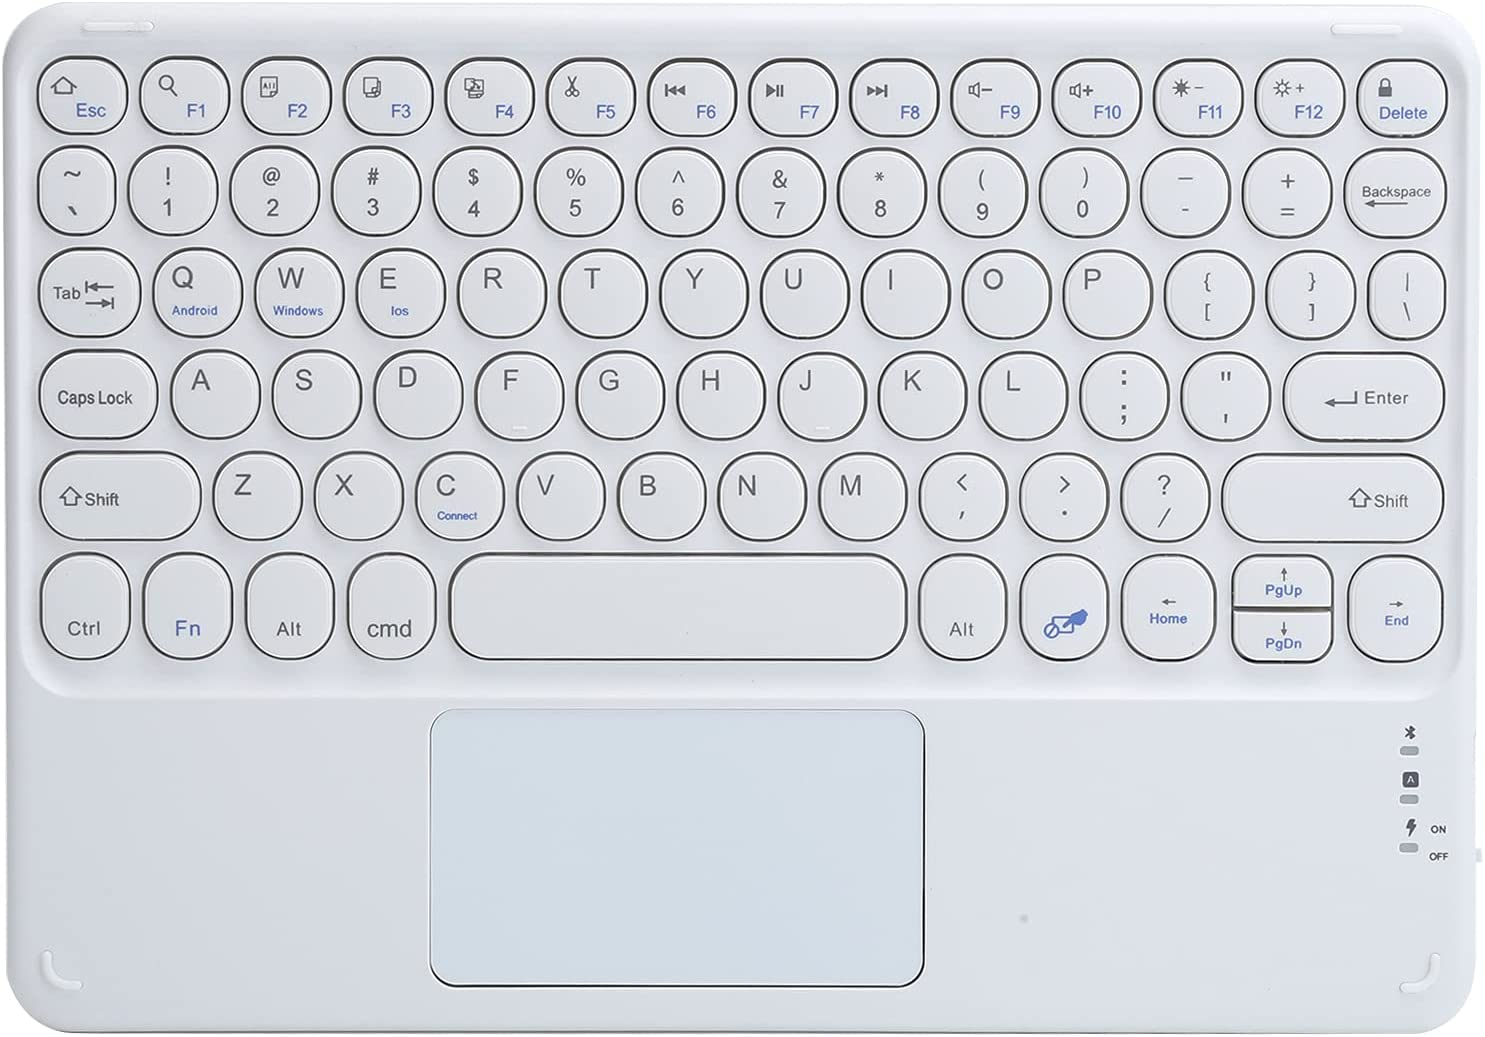 Bluetooth and New arrival Keyboard Rechargeable Touc with Wireless Ranking integrated 1st place